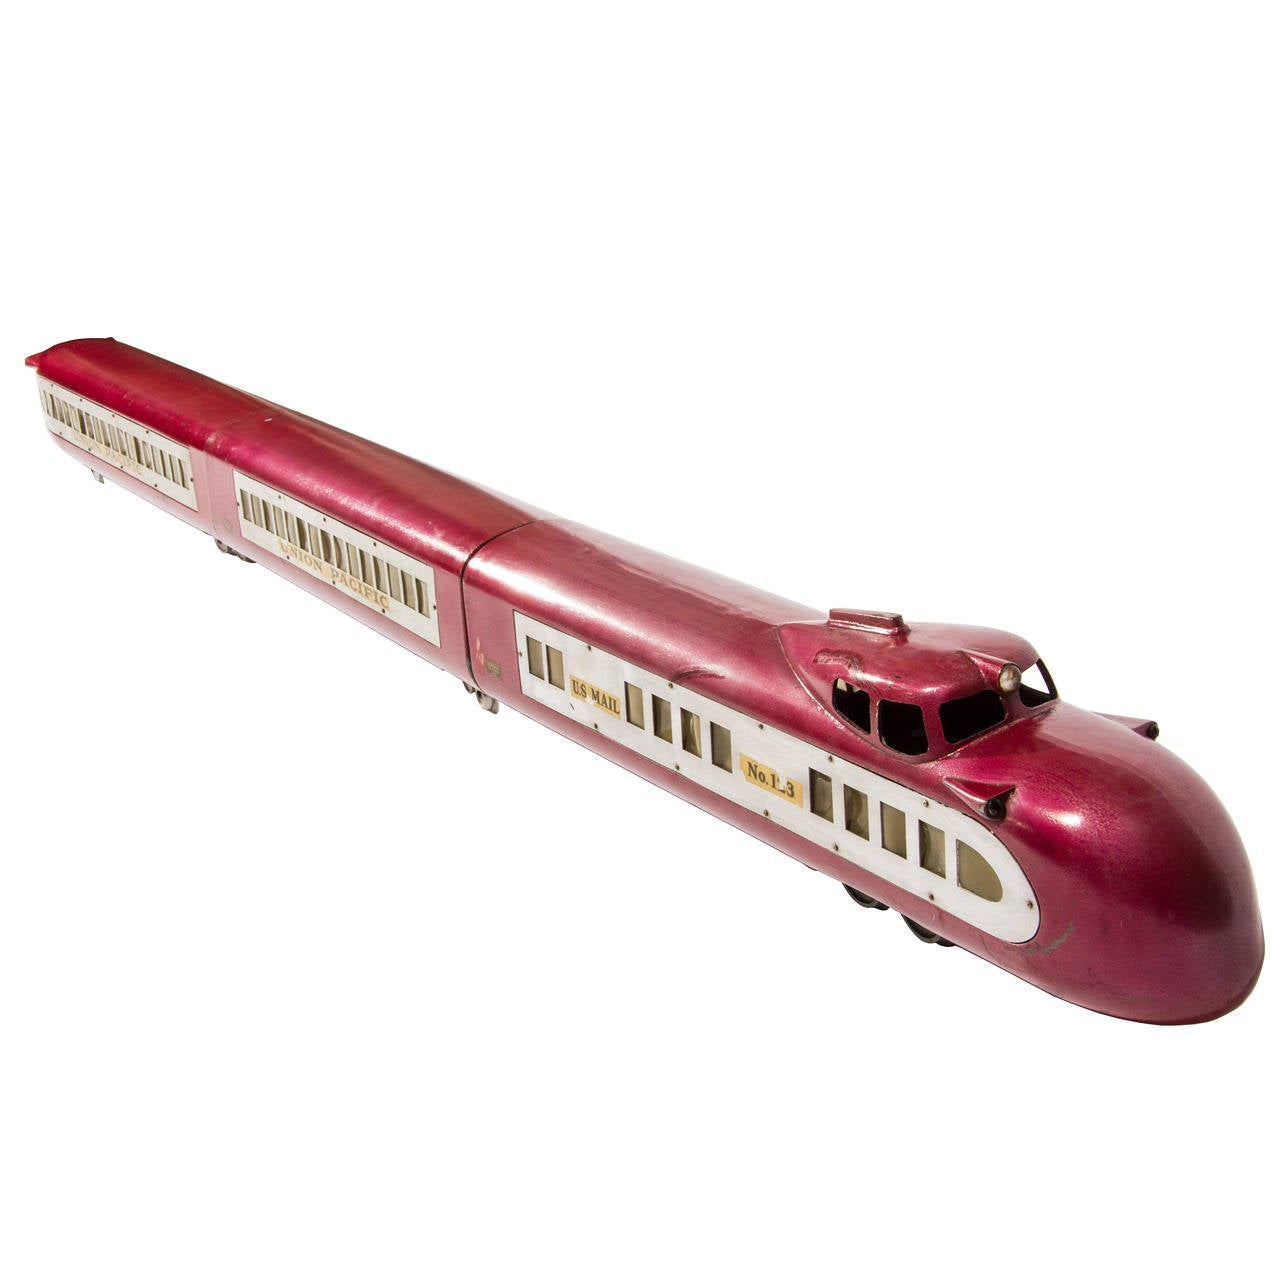 Art Deco Streamlined Union Pacific Model Toy Electric